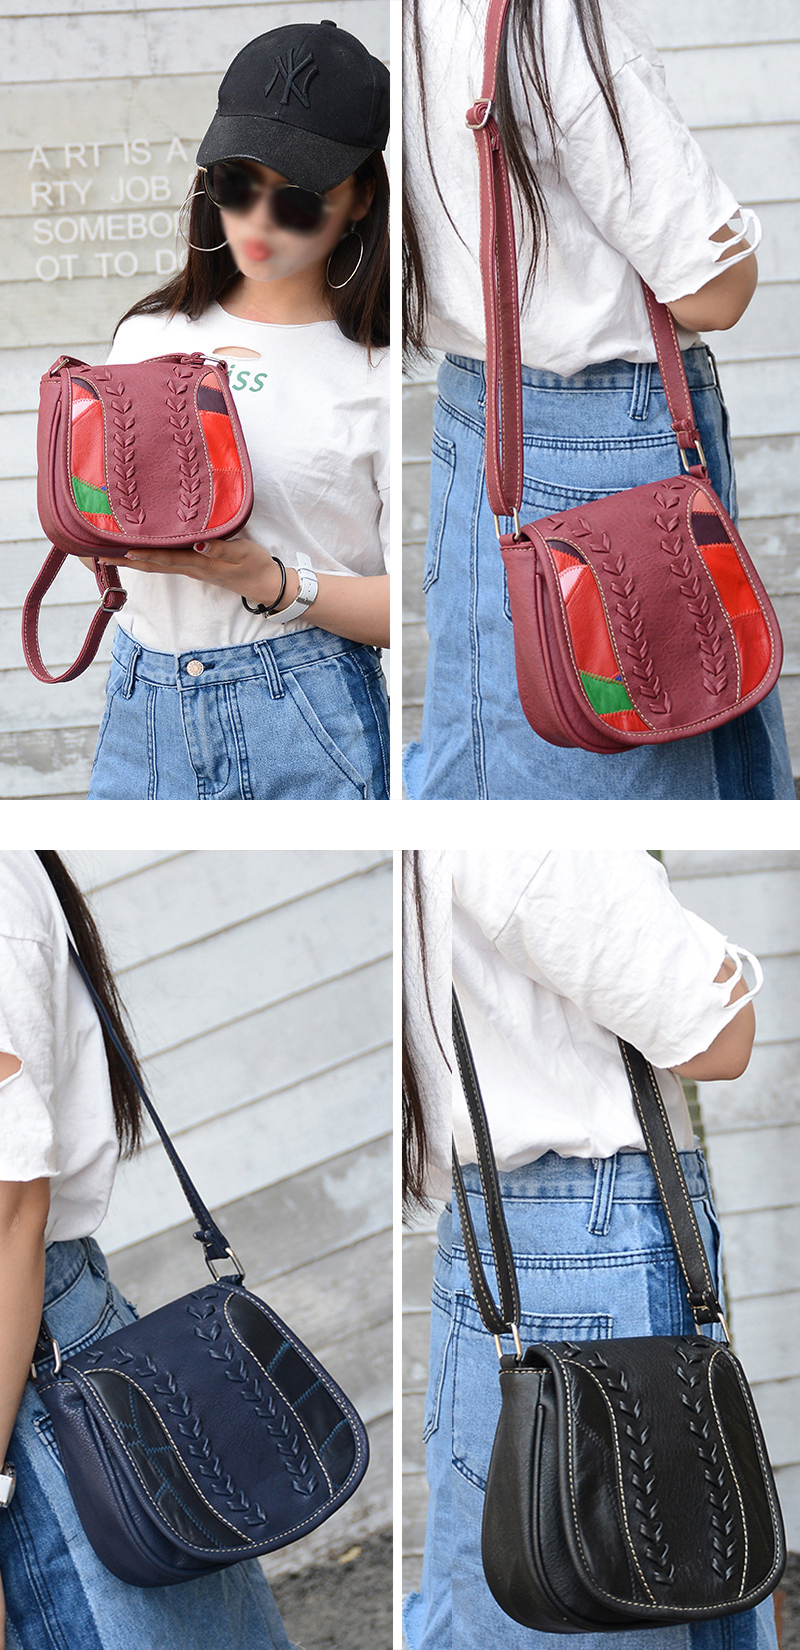 Women Patchwork Crossbody Bag Artificial Leather Vintage Saddle Fashion Shoulder Bag Sling Bag